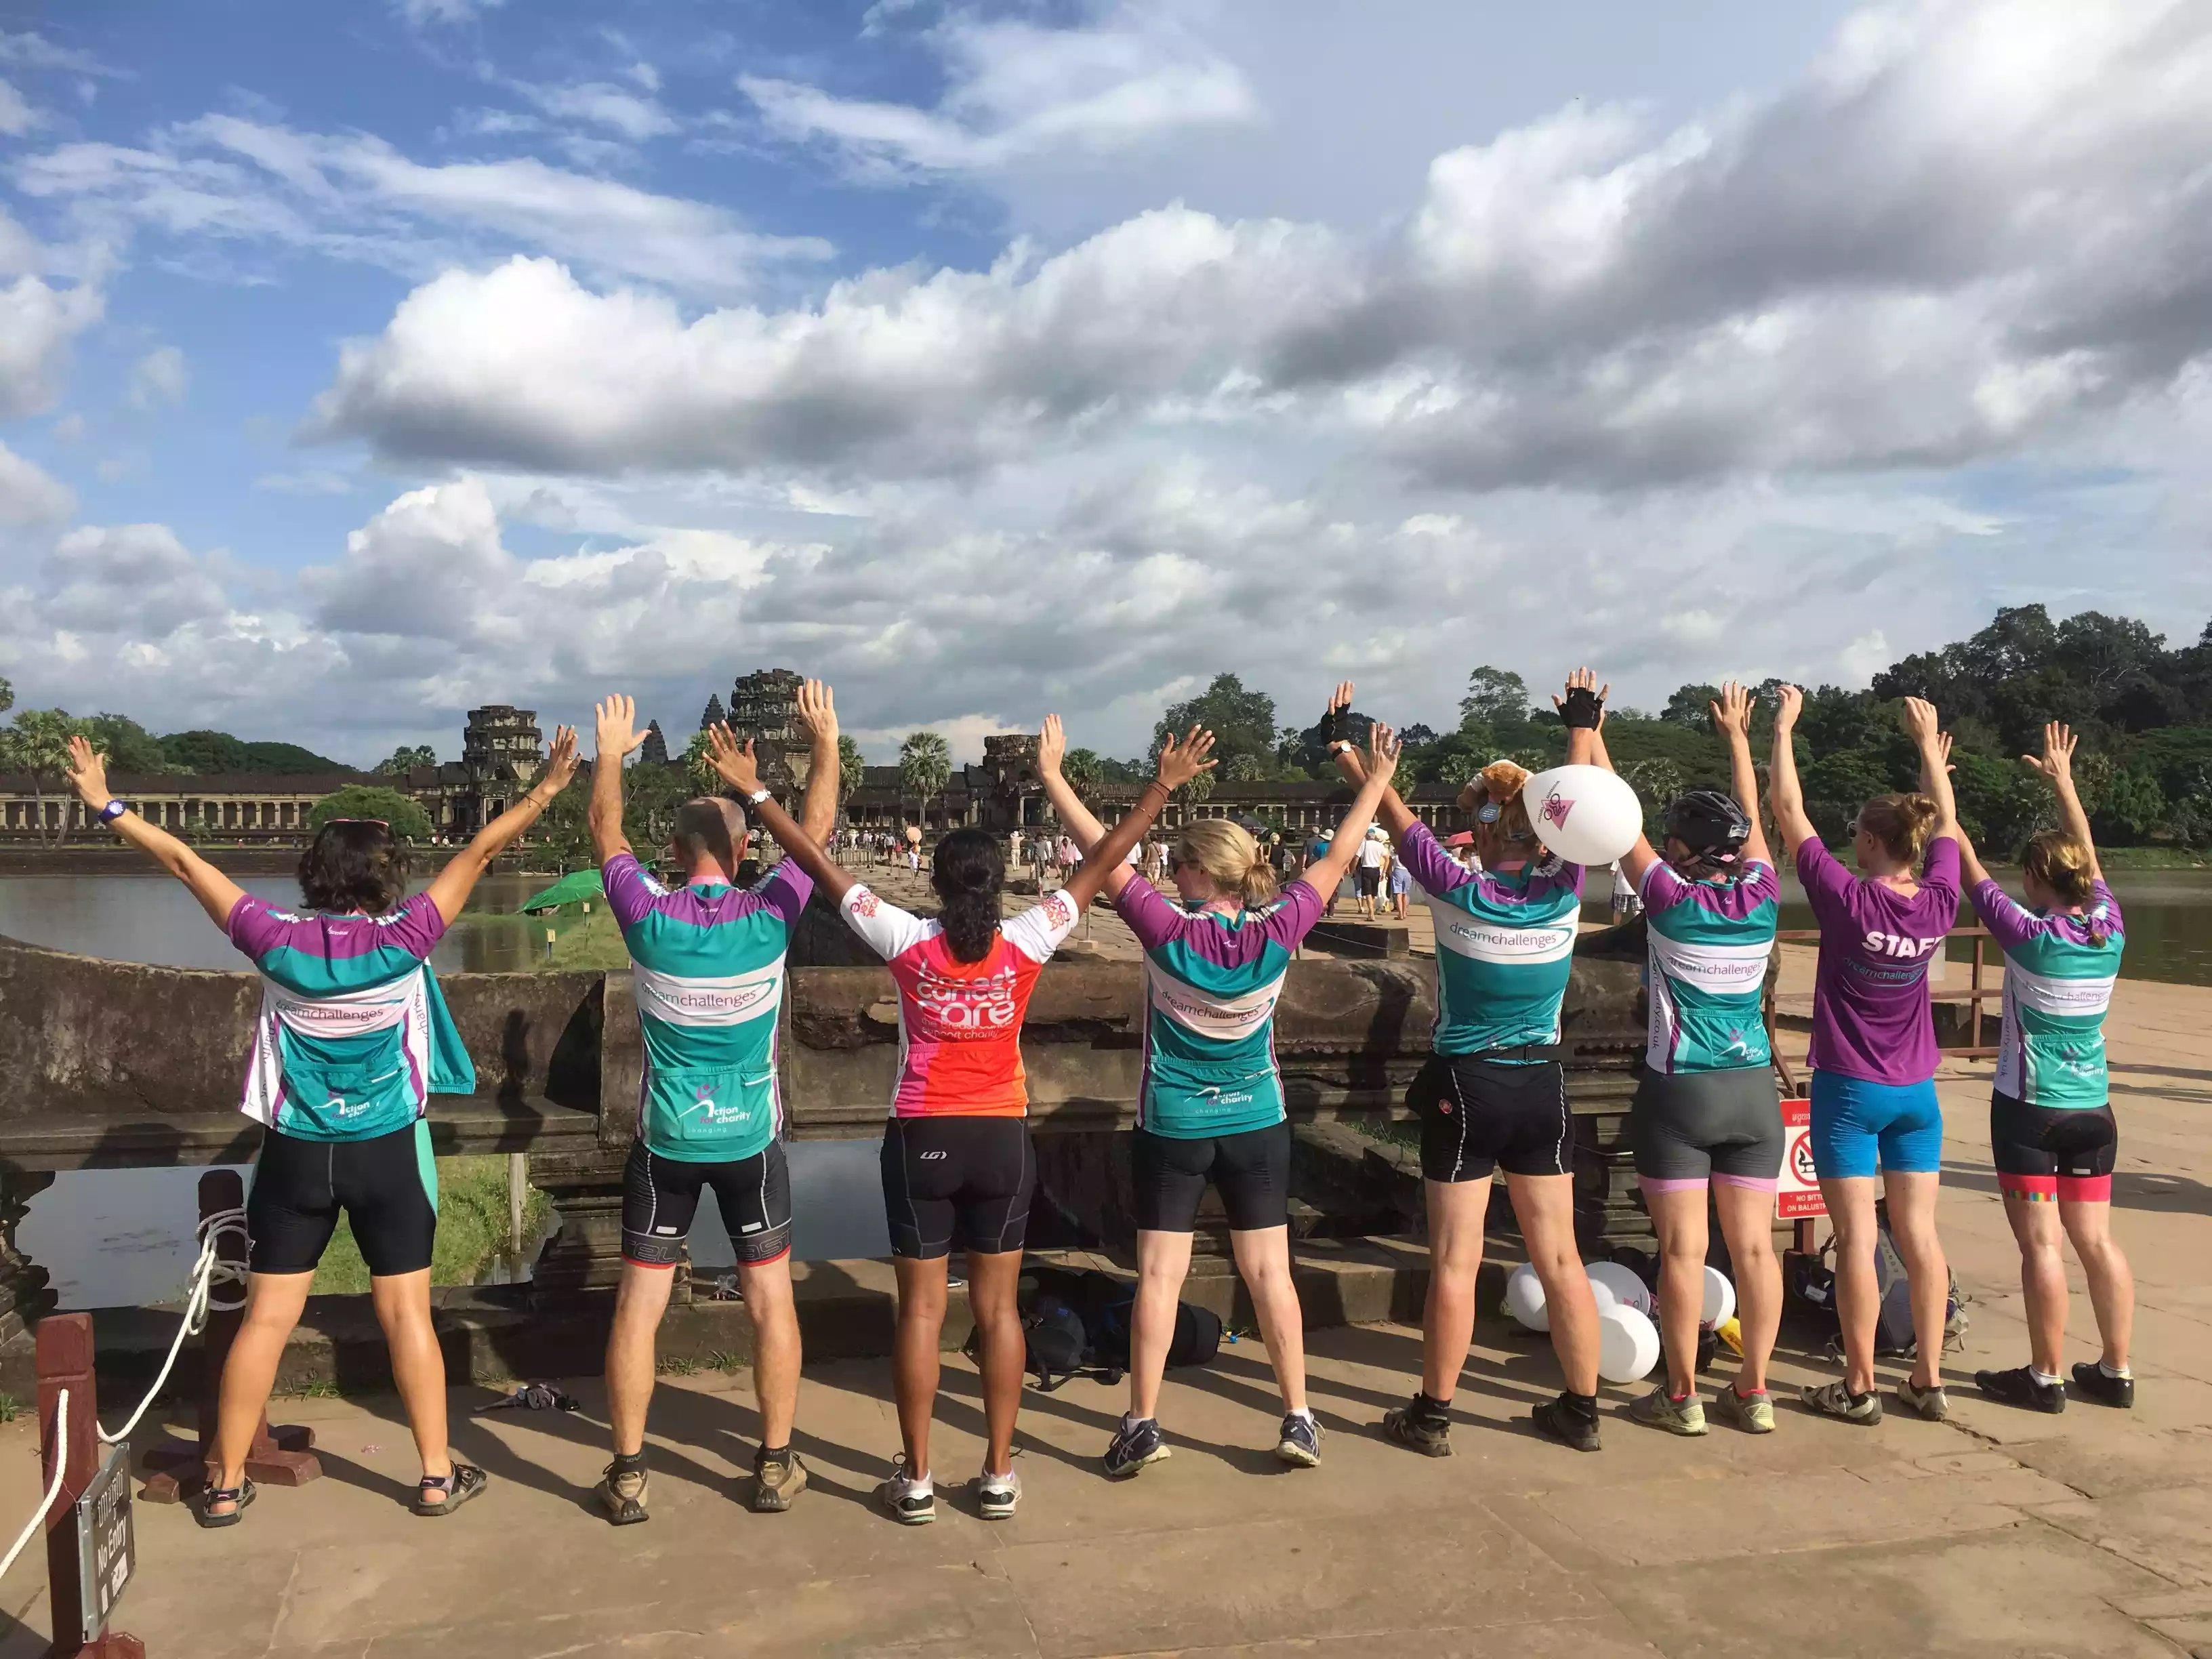 Staff cheer in front of Angkor Wat